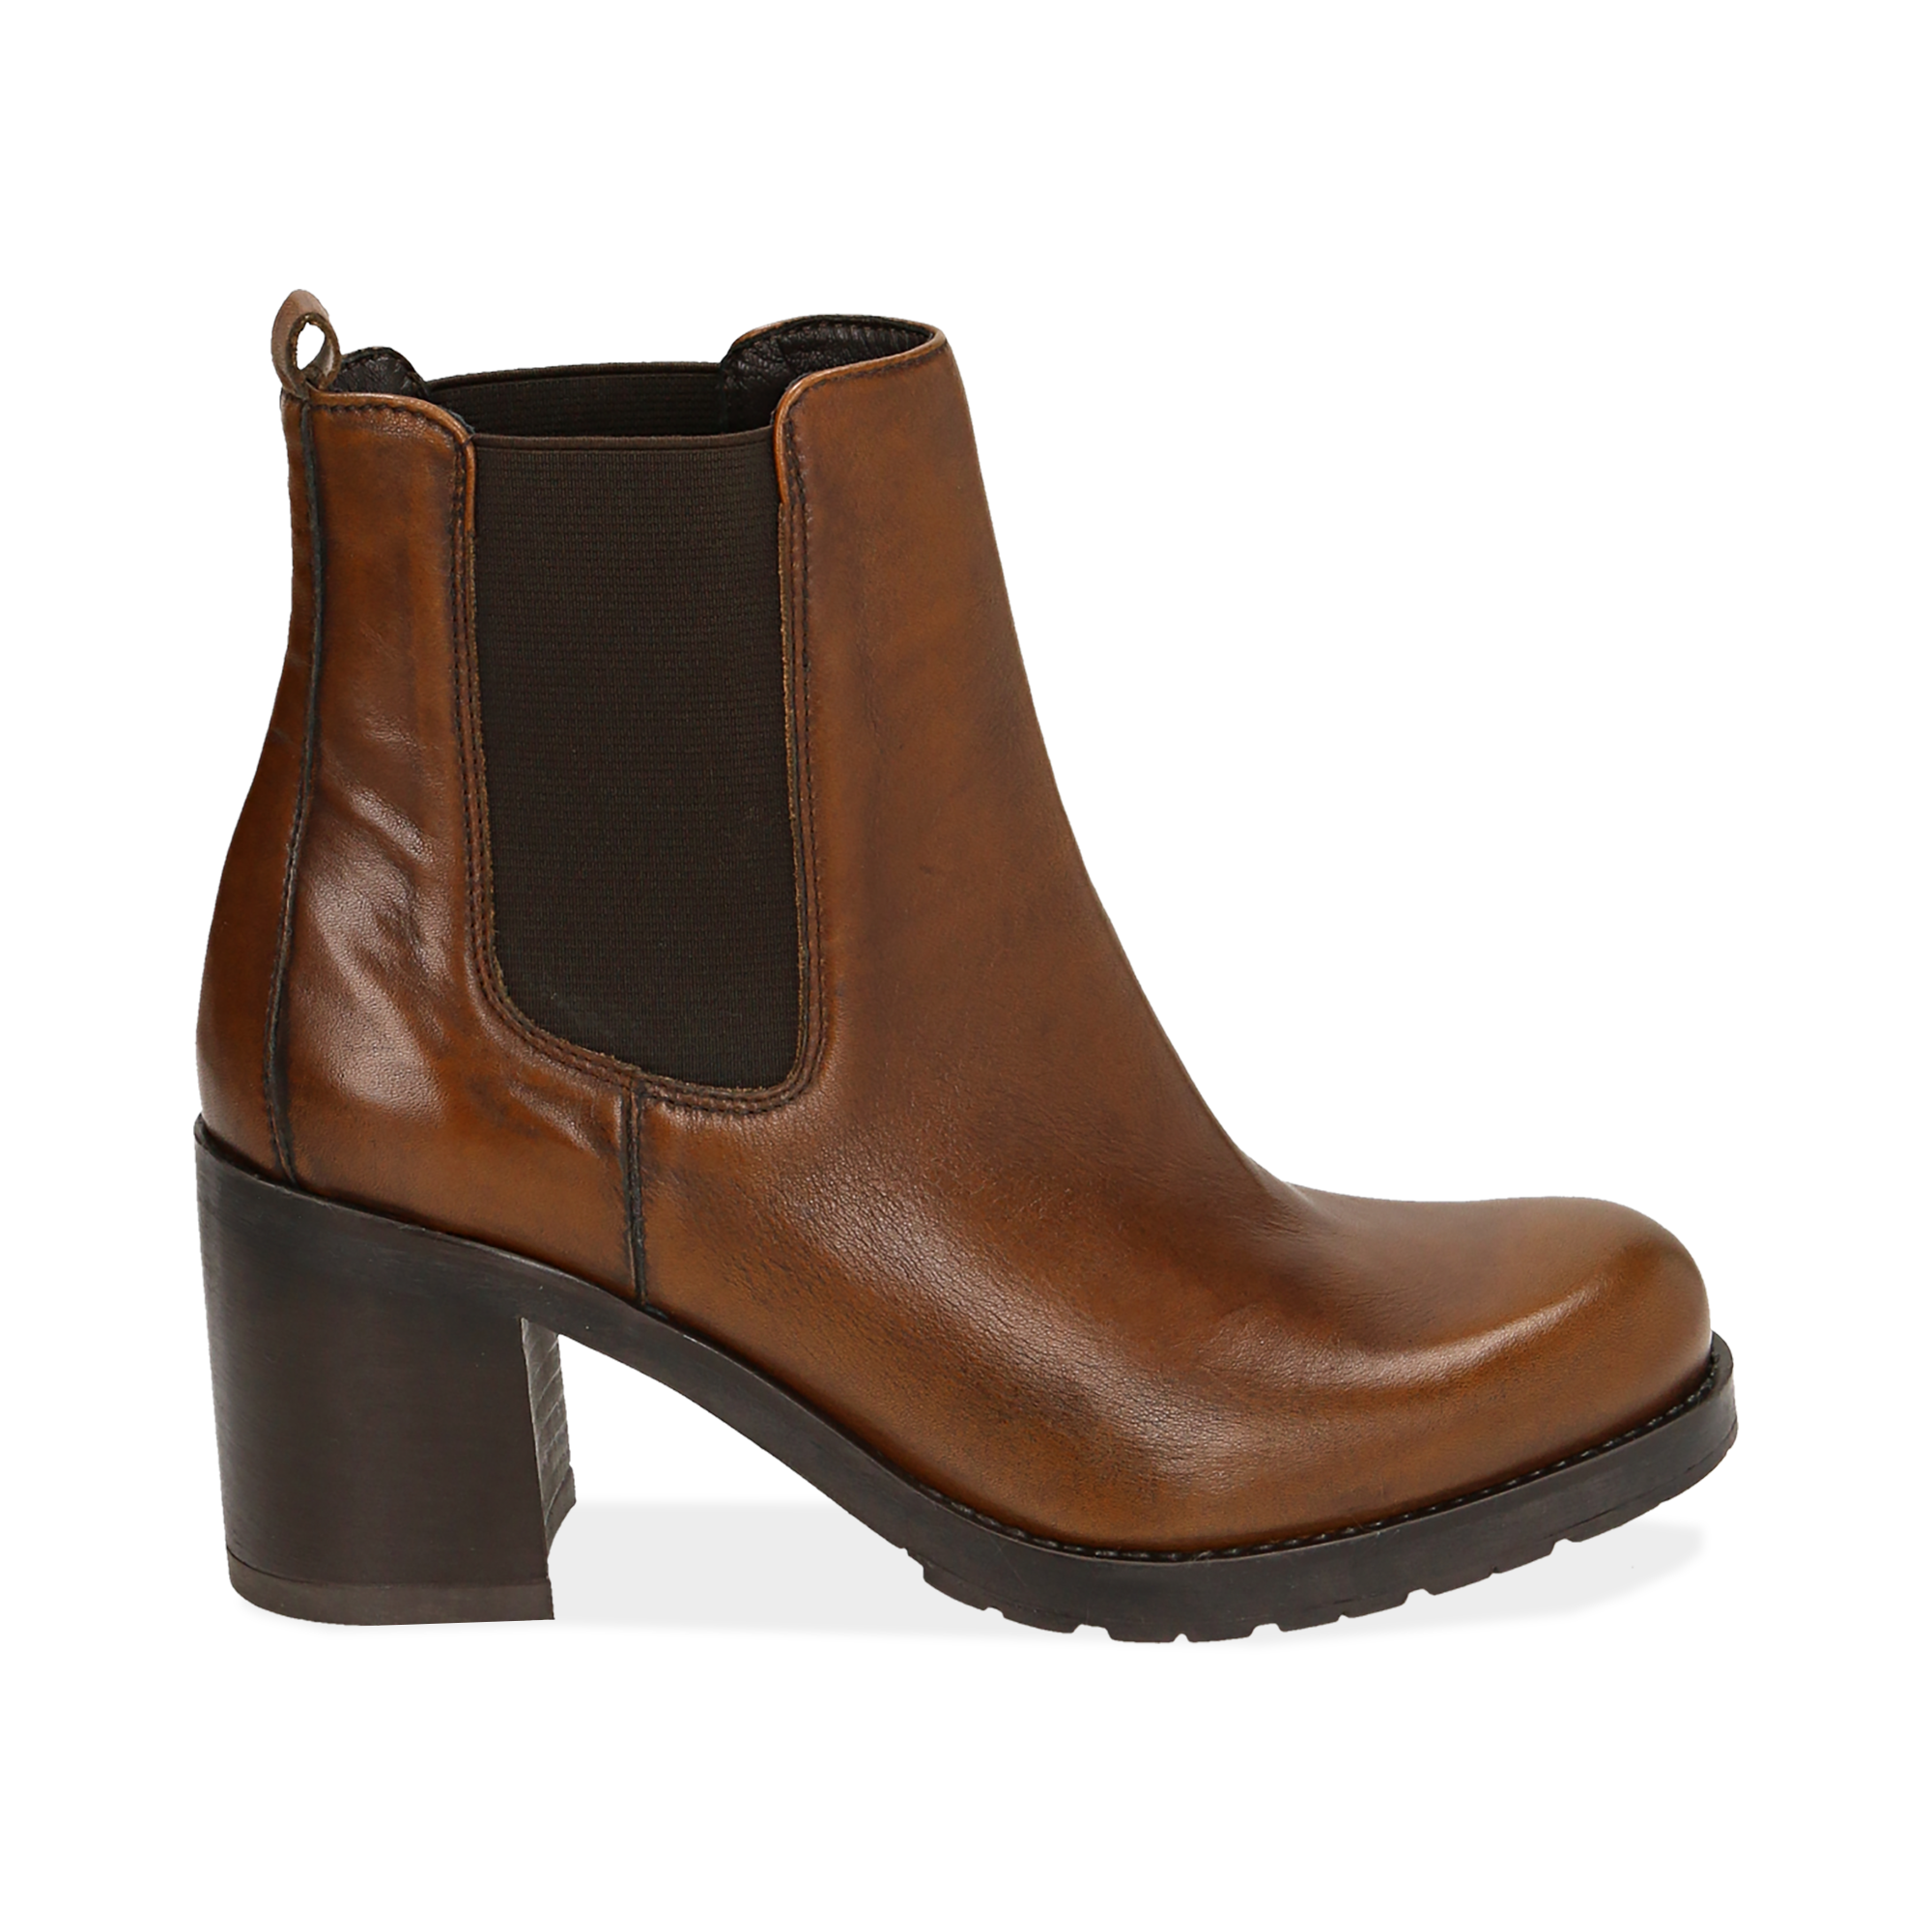 Chelsea boots cuoio in pelle, tacco 7,50 cm